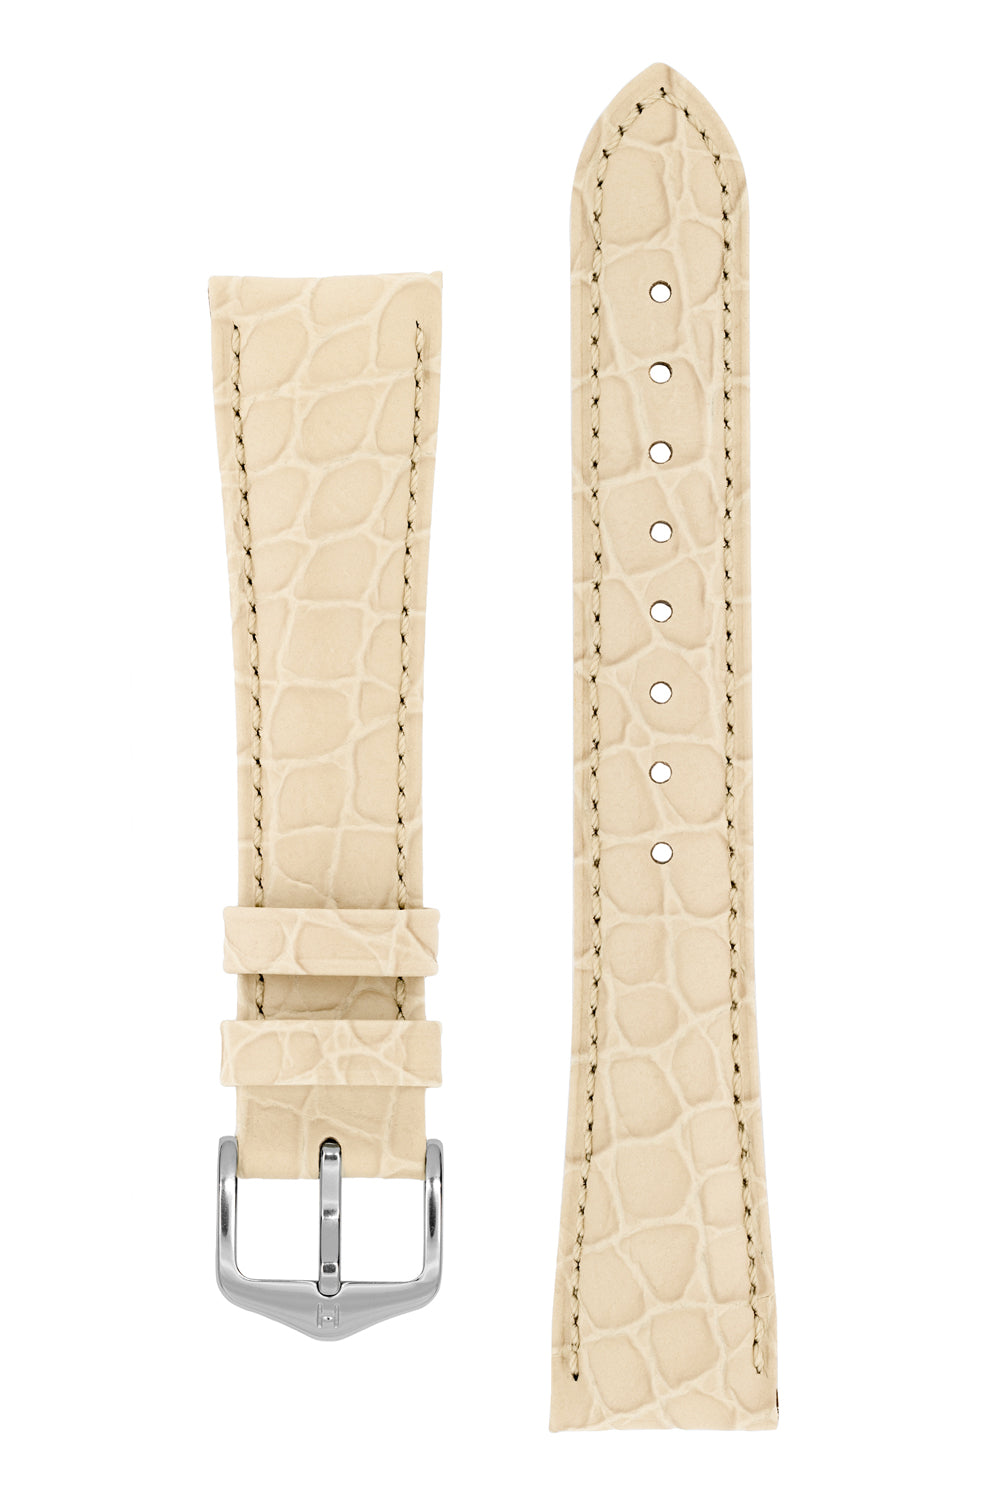 Hirsch ARISTOCRAT Croco Embossed Leather Watch Strap in BEIGE